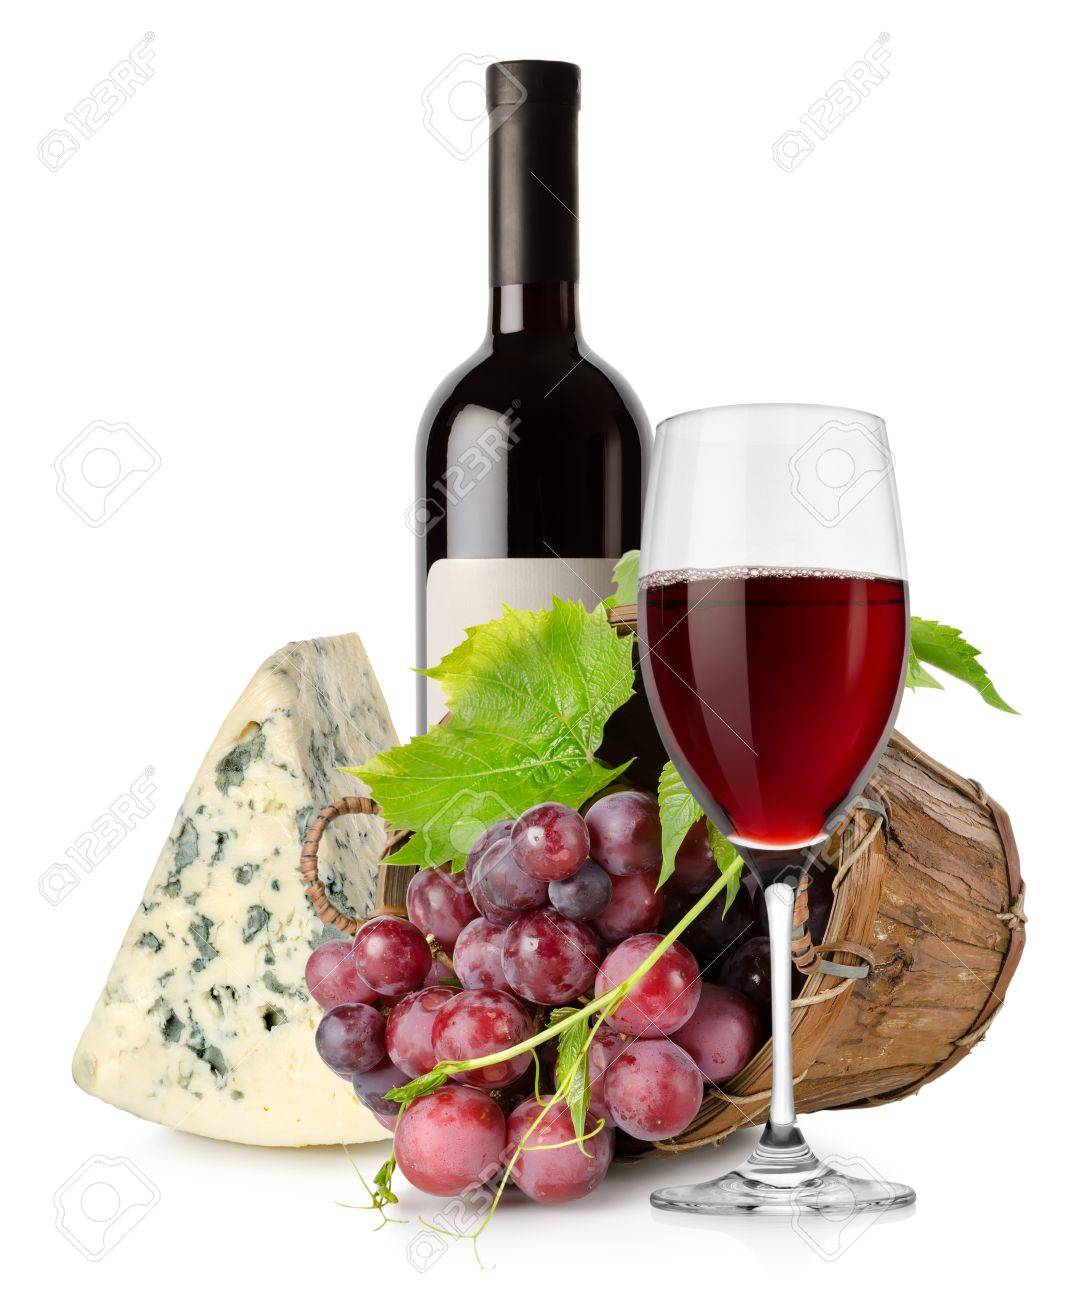 Wine cheese and grape in basket Stock Photo - 17963015